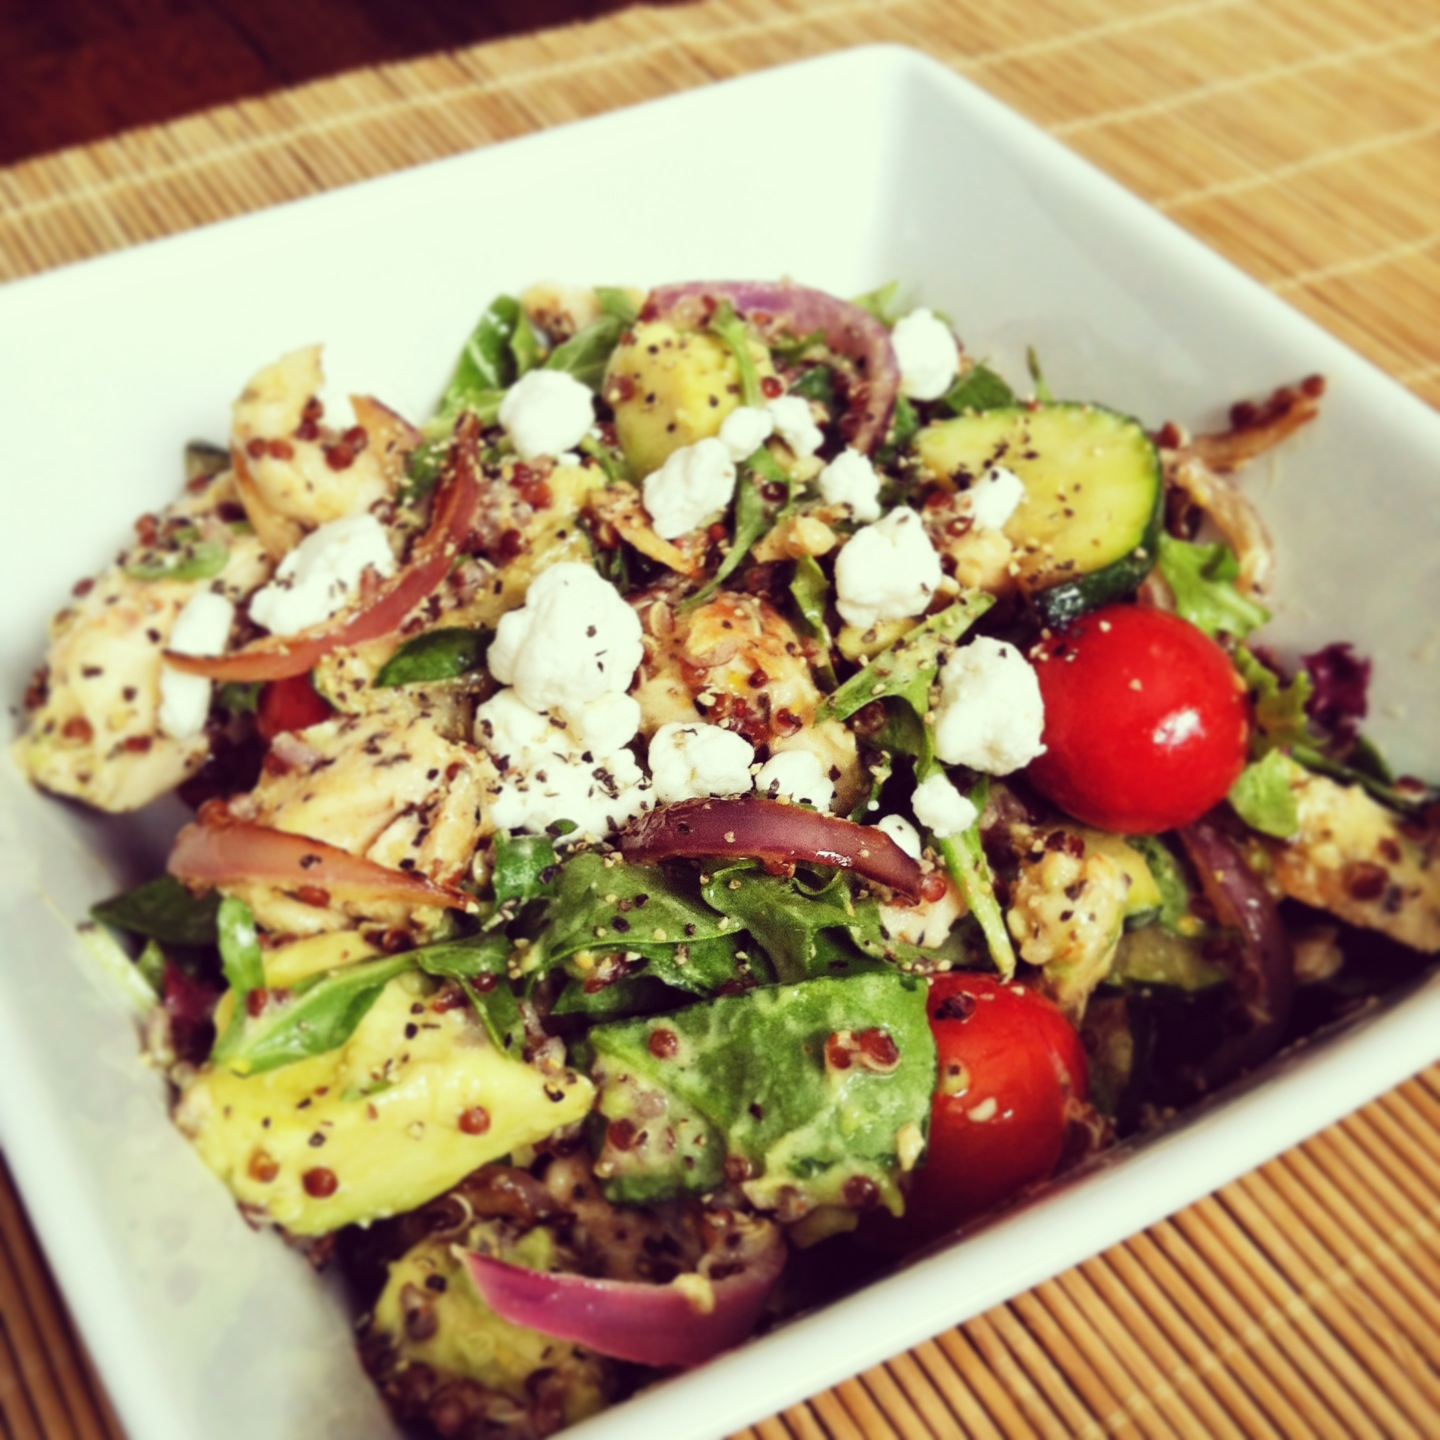 Protein Packed Spinach Salad! Sneak Peak Recipe From 21 Day July Fat Blast Challenge